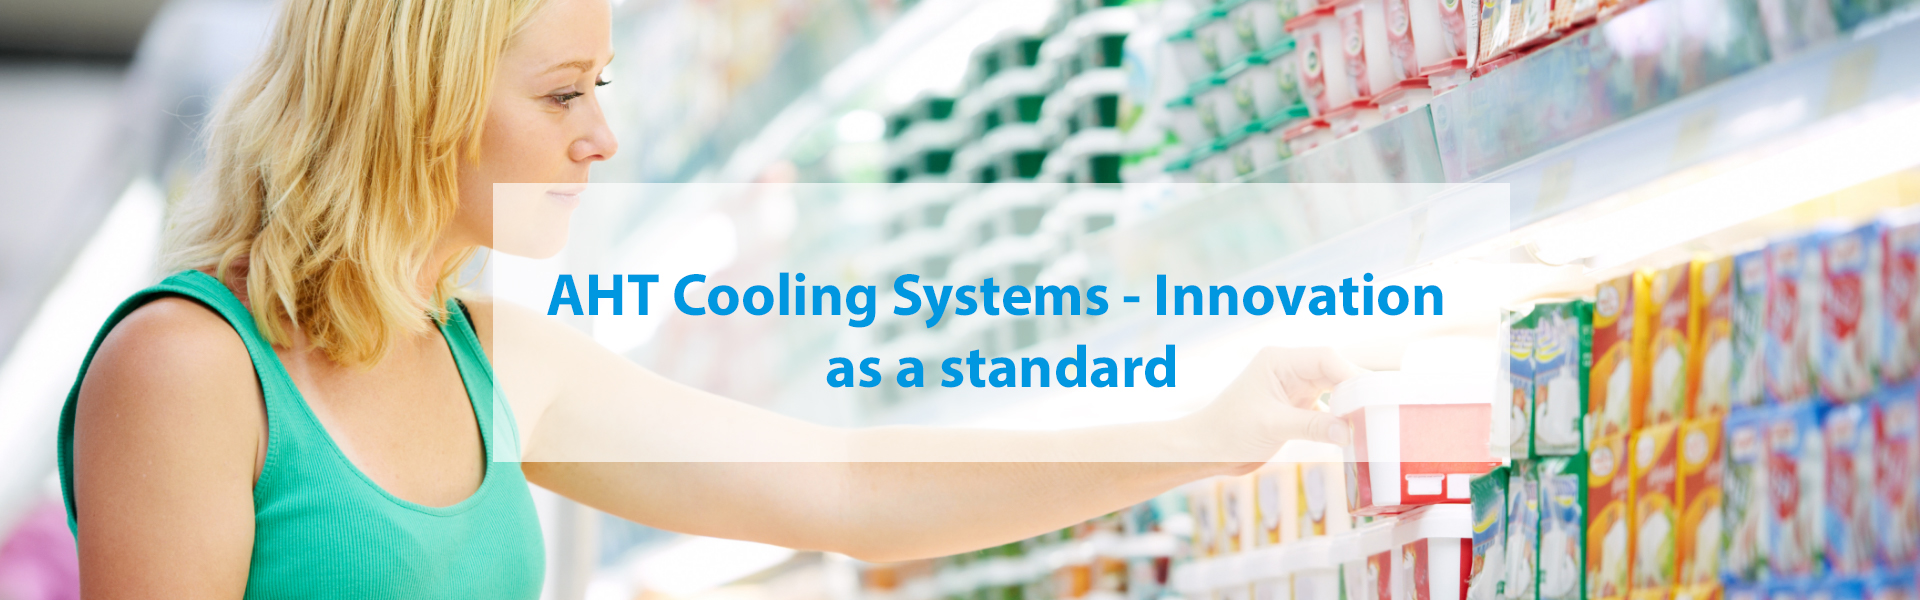 AHT Cooling Systems - Innovation as a standard banner.jpg